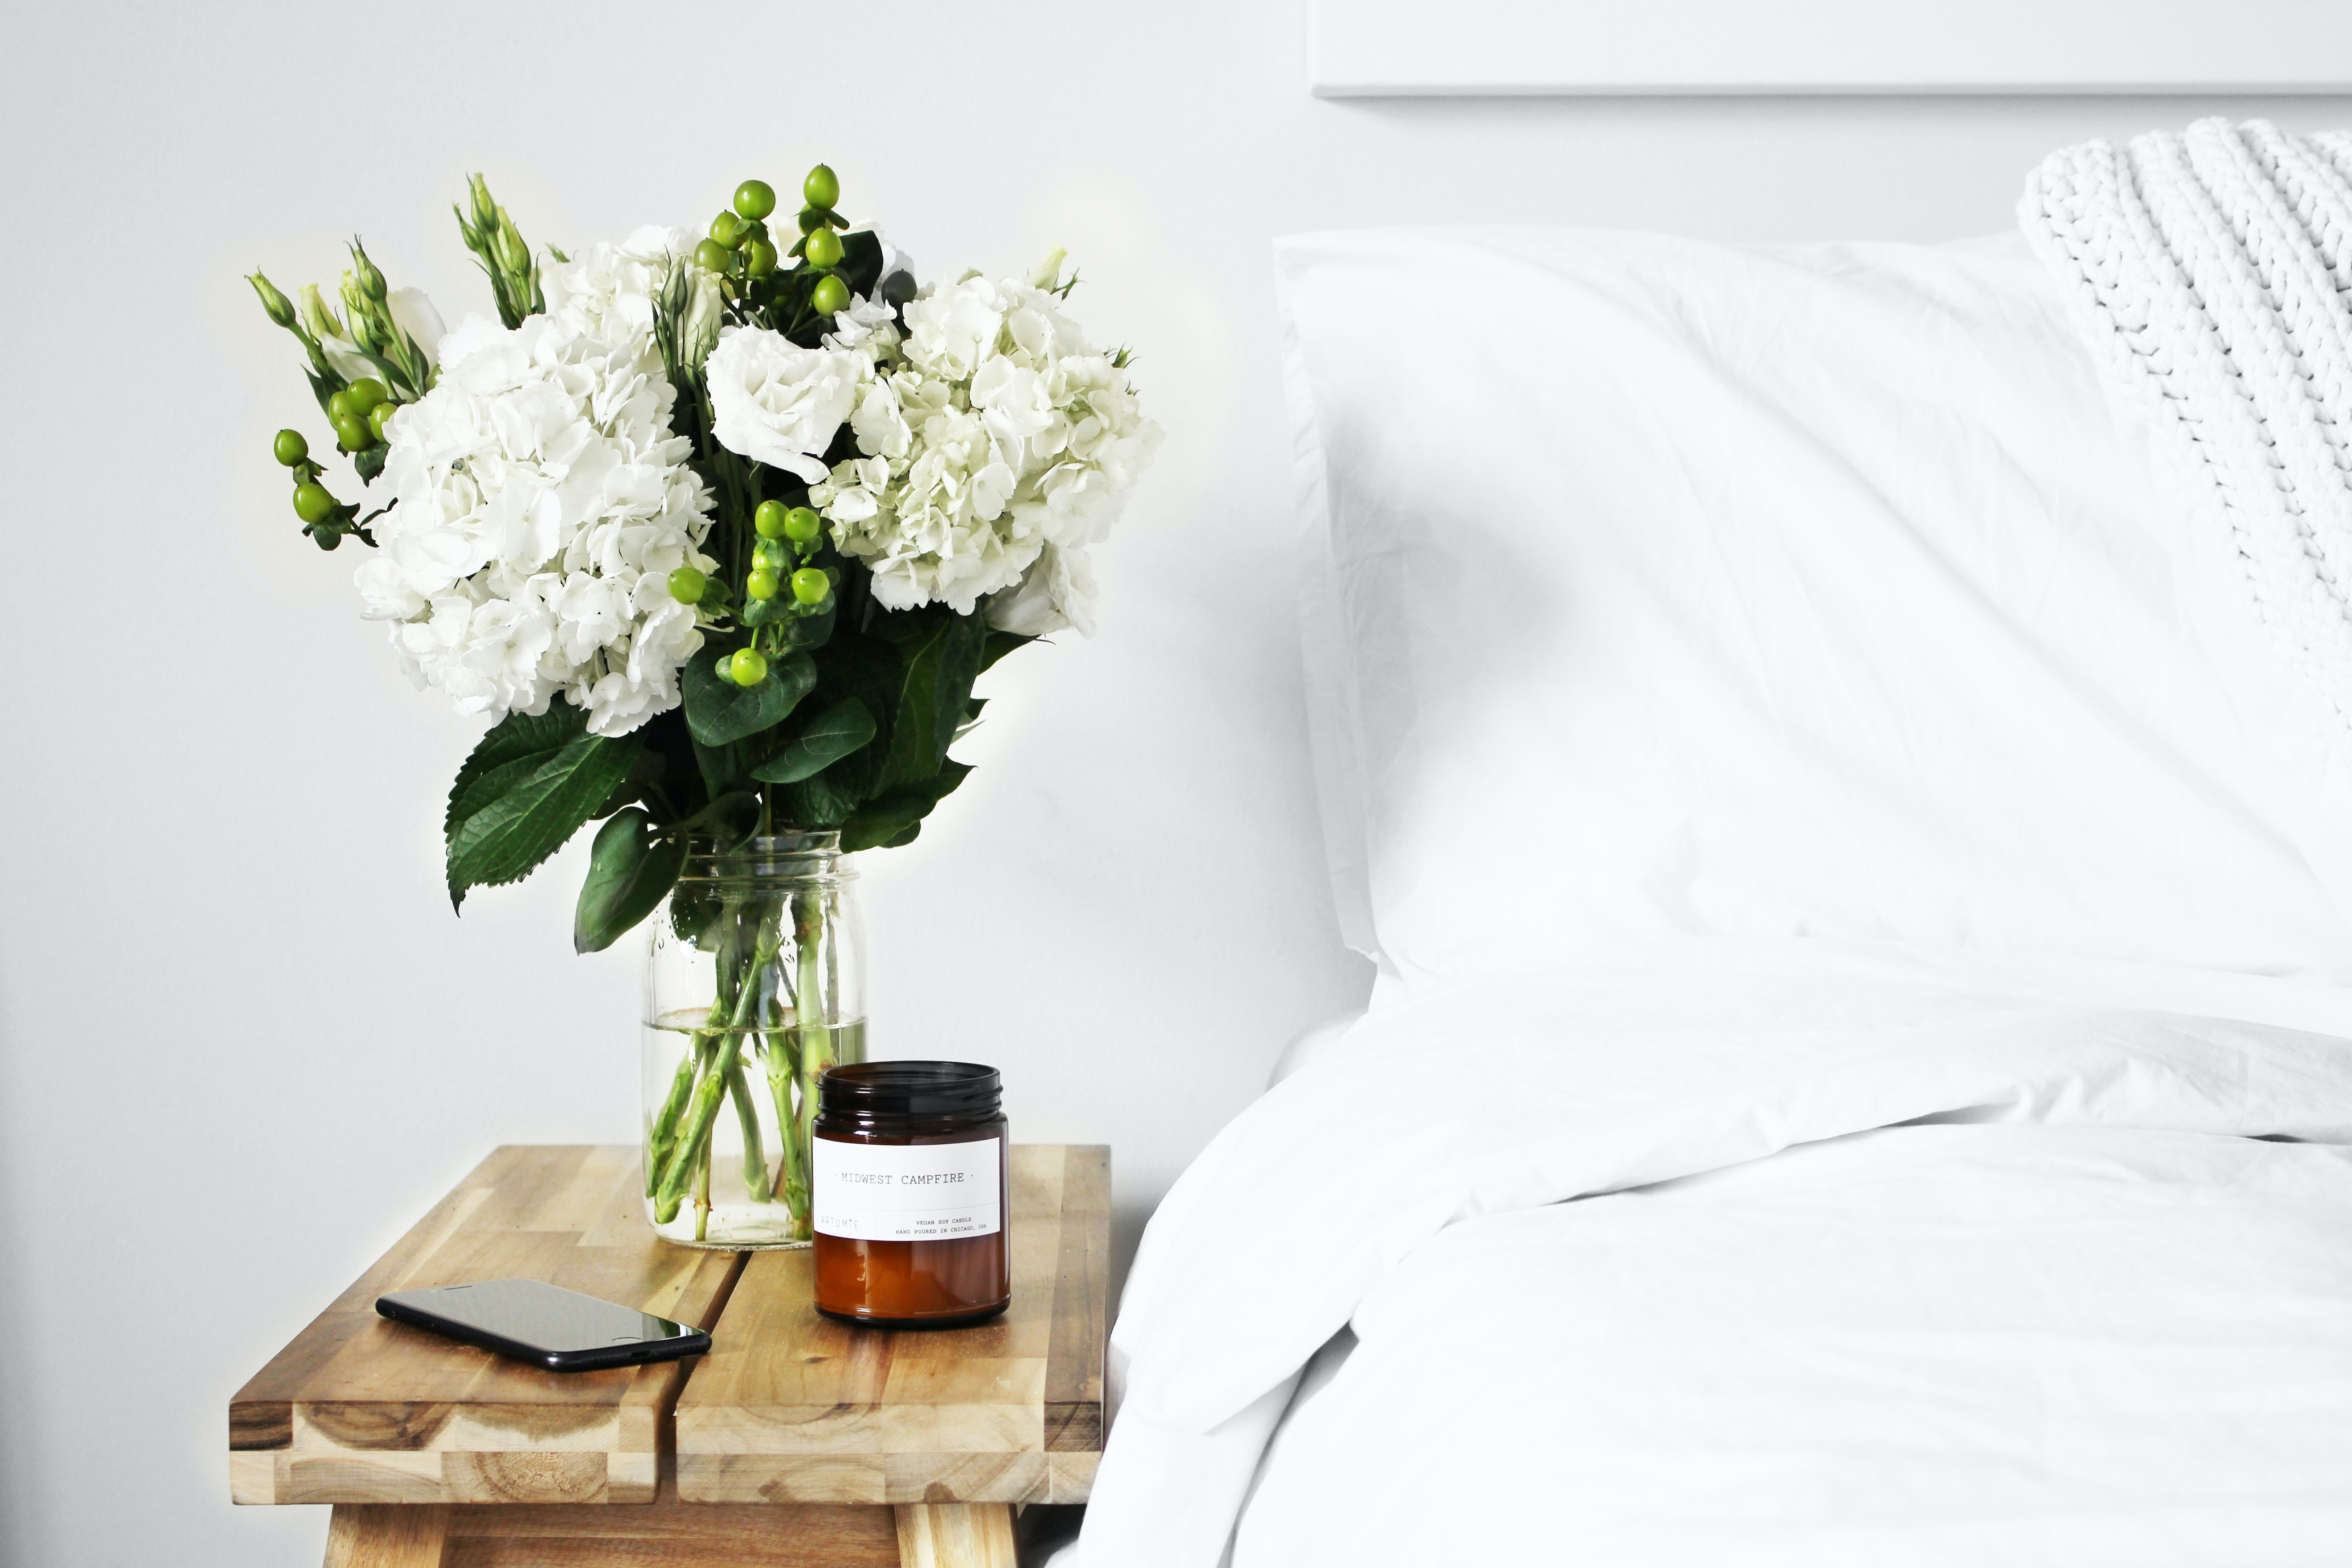 A bed with white duvet and pillows is next to wooden panels used as a bedside table. On top of the bedside table is a bunch of white flowers in a clear glass vase. Next to the vase is a black phone and a amber jar that has a candle.